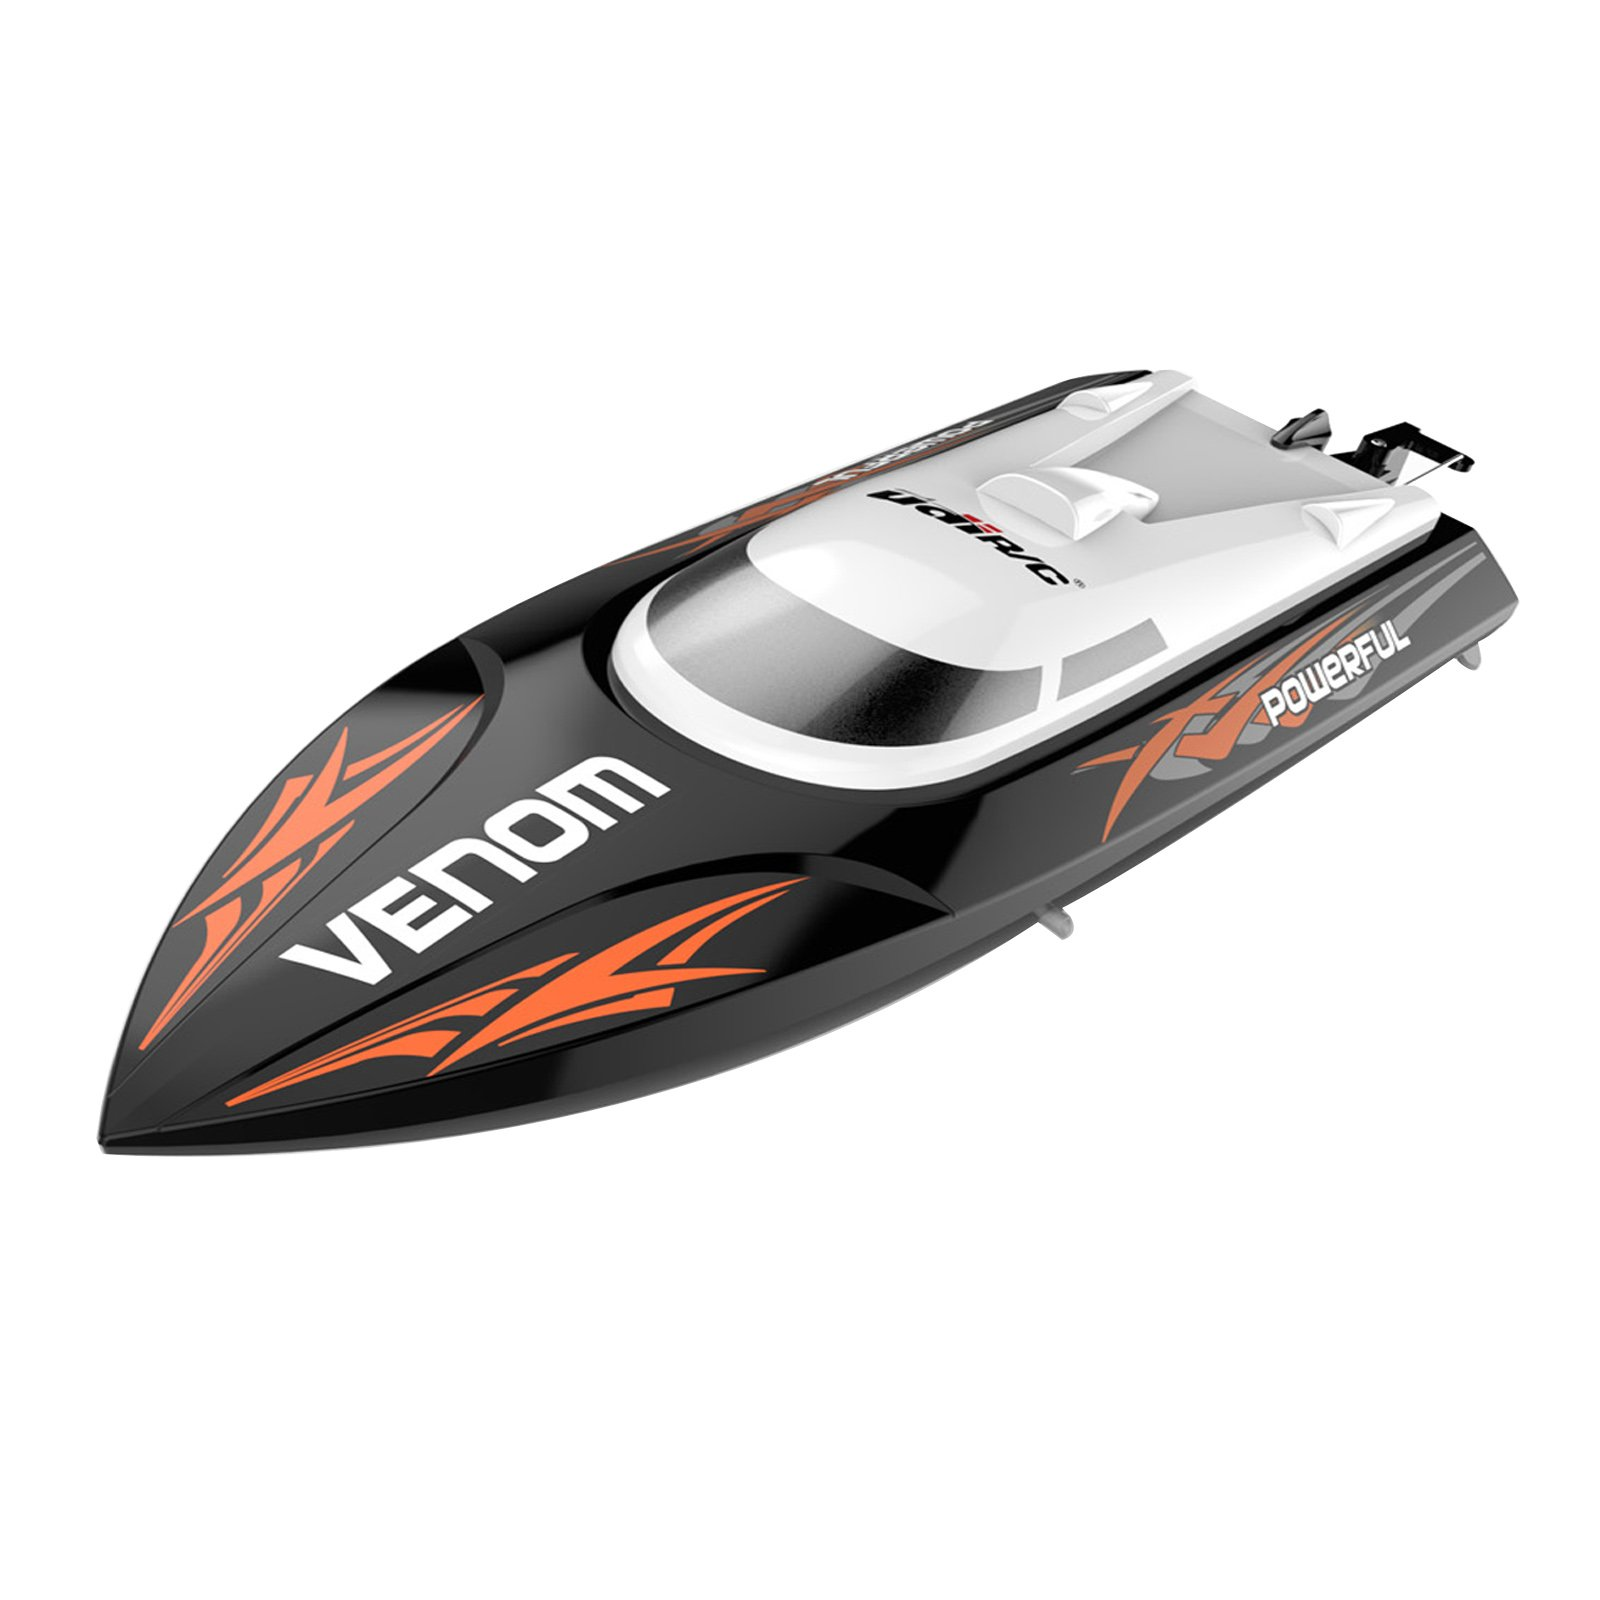 Cheerwing RC Racing Boat for Adults - High Speed Electronic Remote Control Boat for Kids, Black by Cheerwing (Image #3)